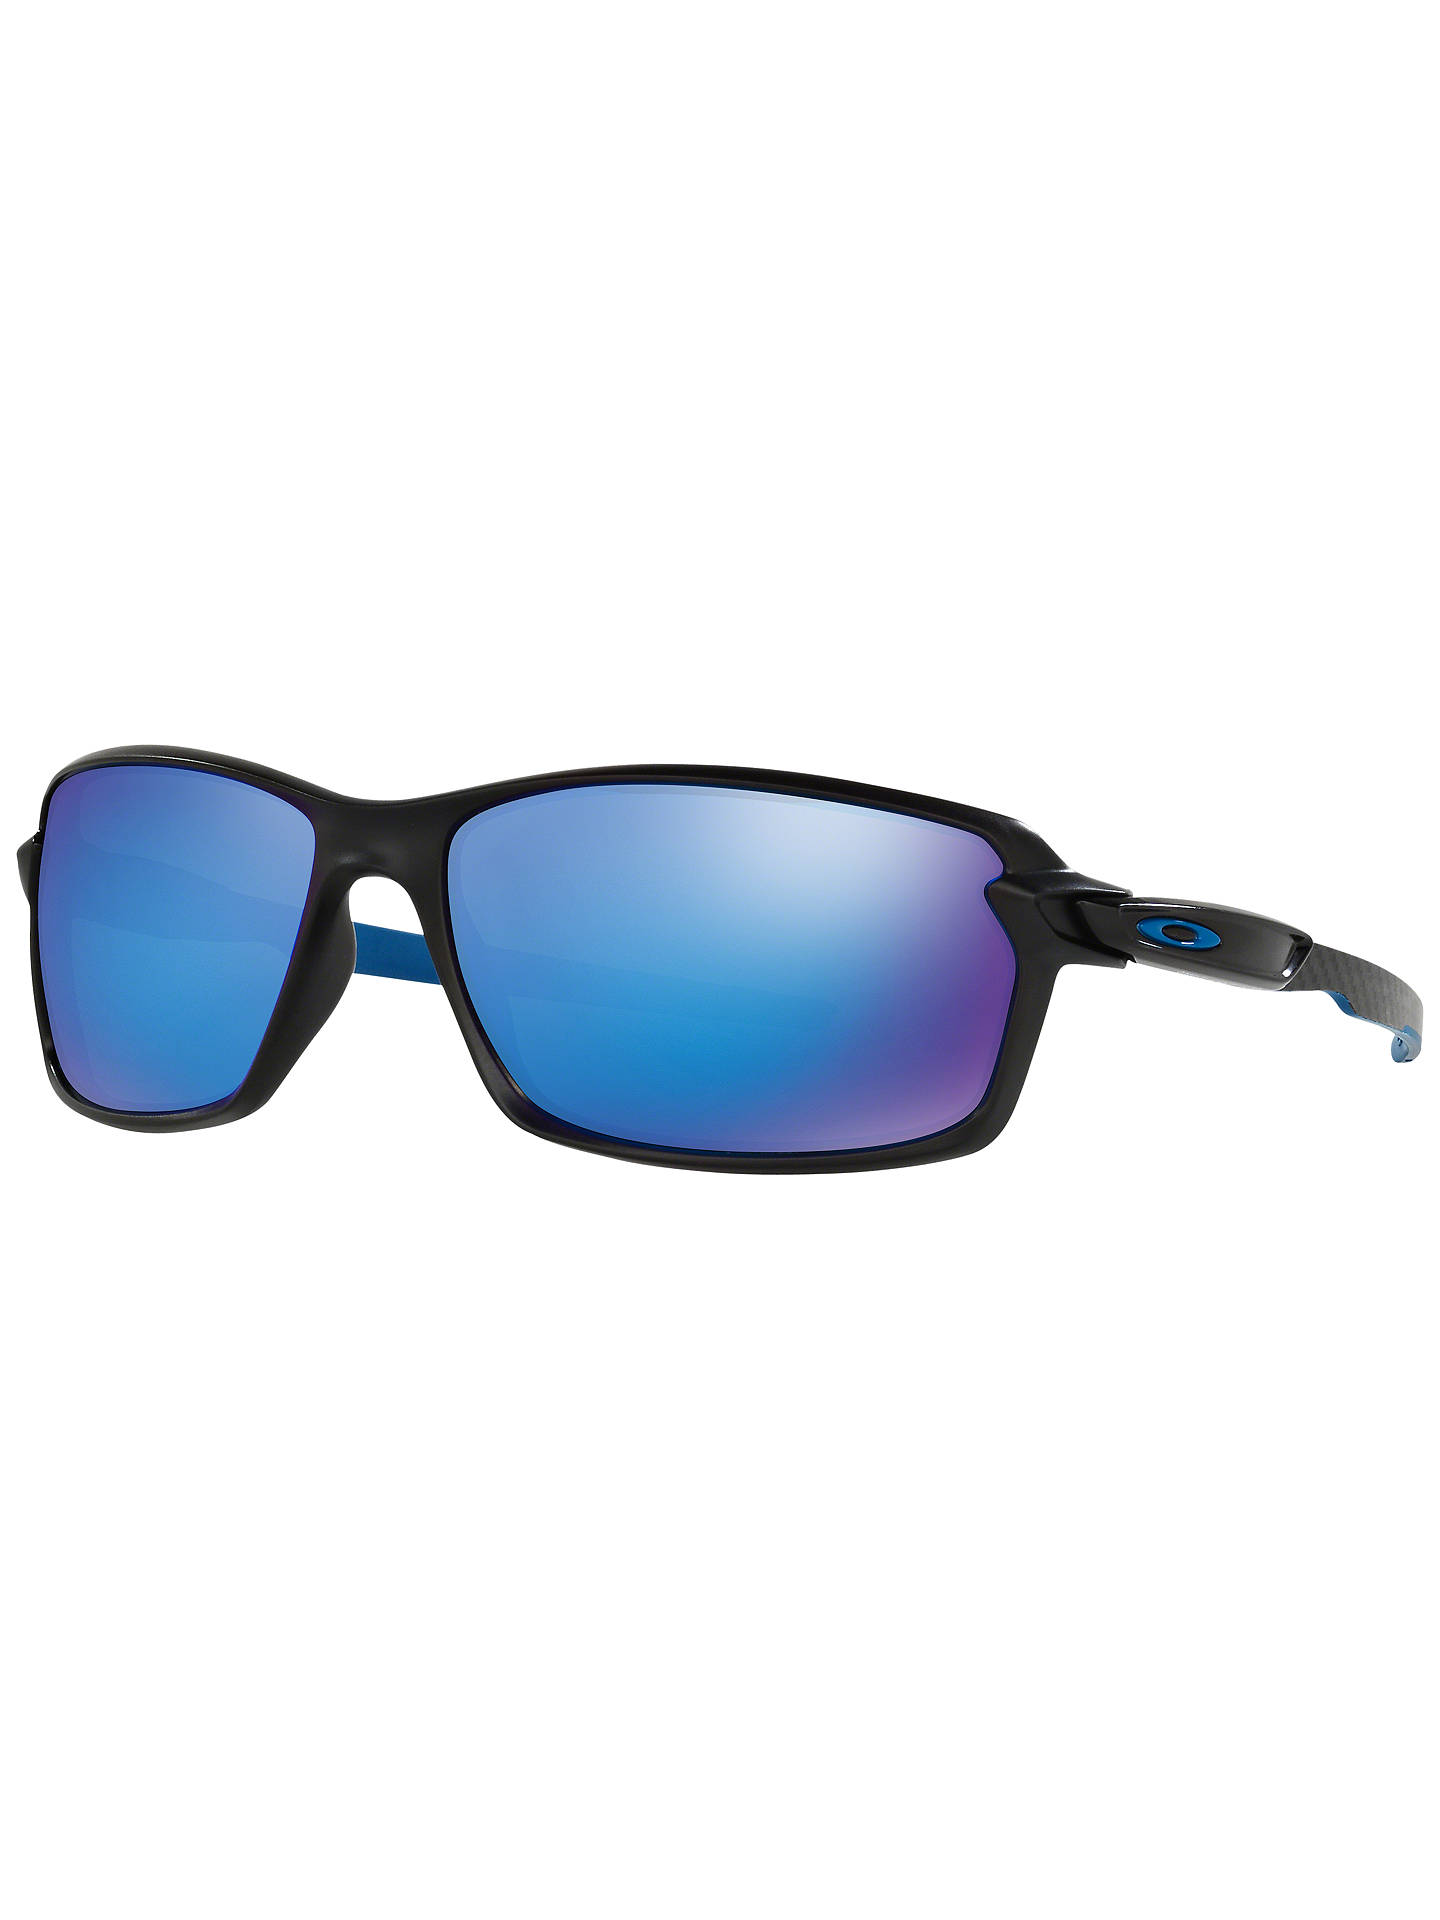 4c75bfeb8d74 Buy Oakley OO9302 Carbon Shift Rectangular Framed Sunglasses, Black Matte  Online at johnlewis.com ...